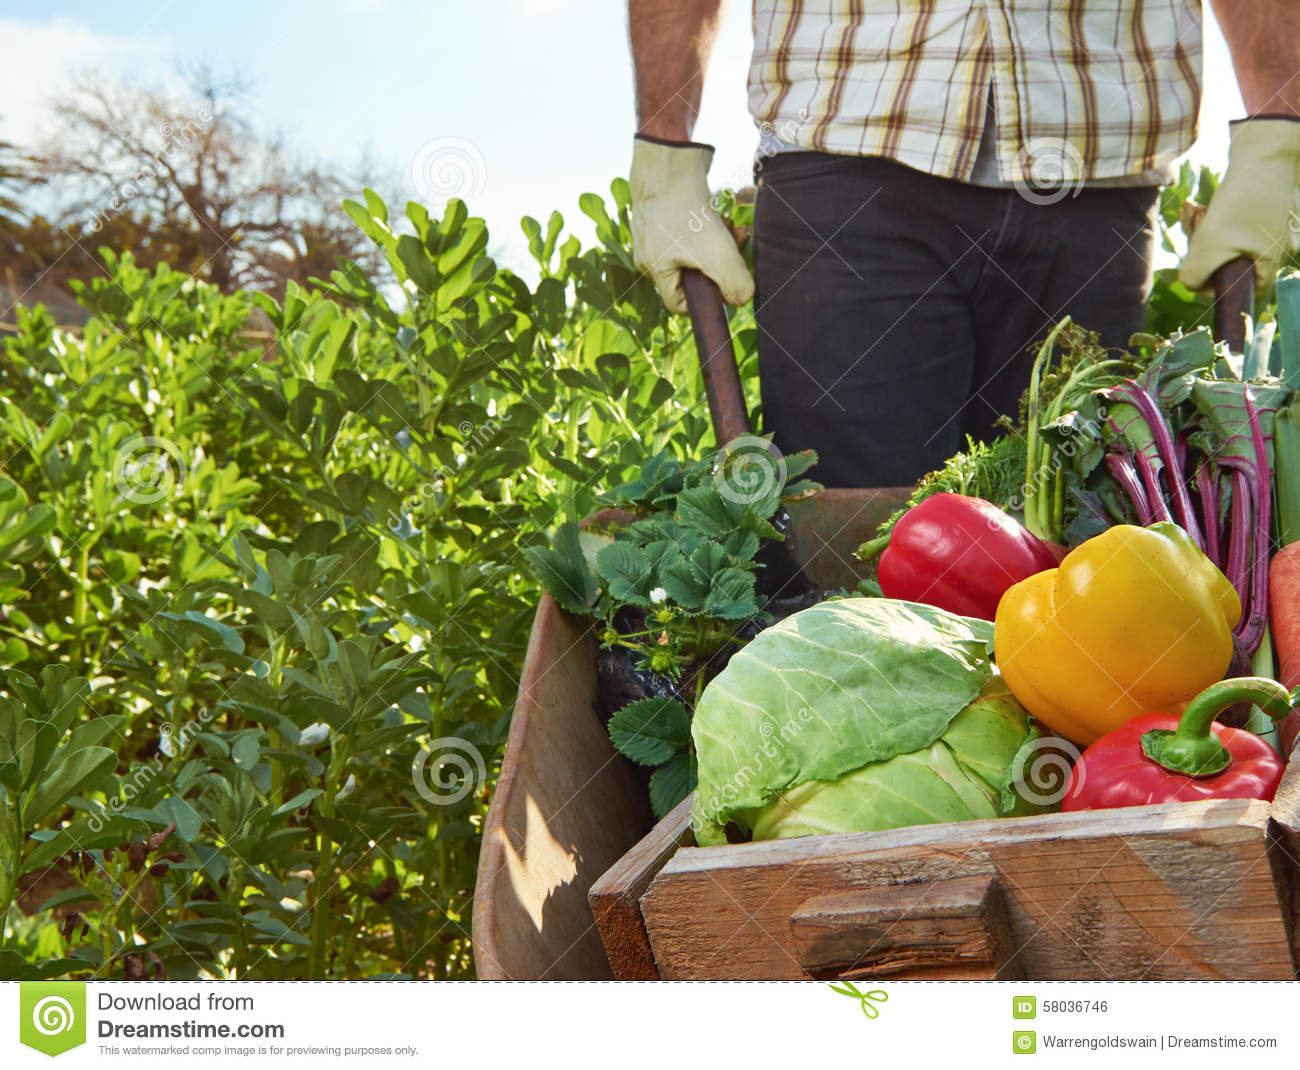 Sustainable Farmer Farmer On Local Sustainable Organic Farm Stock Photo Image Of